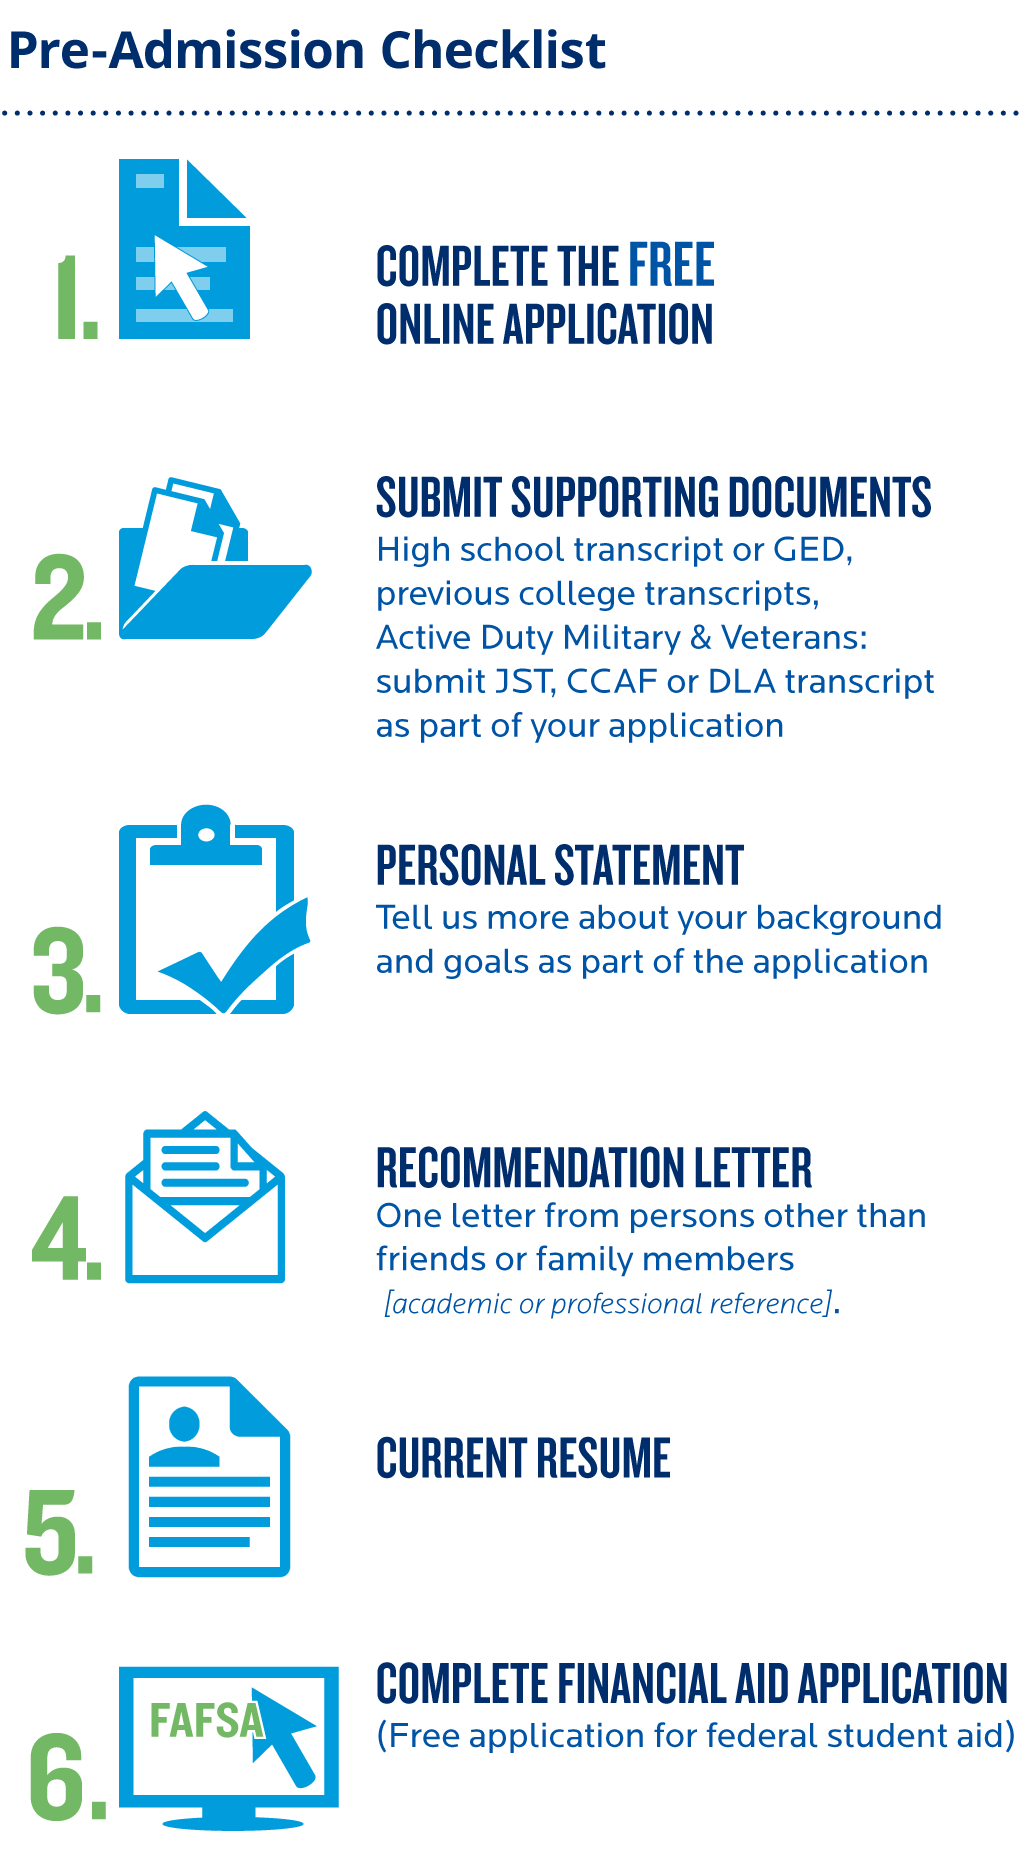 Pre-Admission checklist, 1. Complete the free online application, 2. submit supporting documents, 3. personal statement, 4. recommendation letter, 5. current resume, 6. complete financial aid application